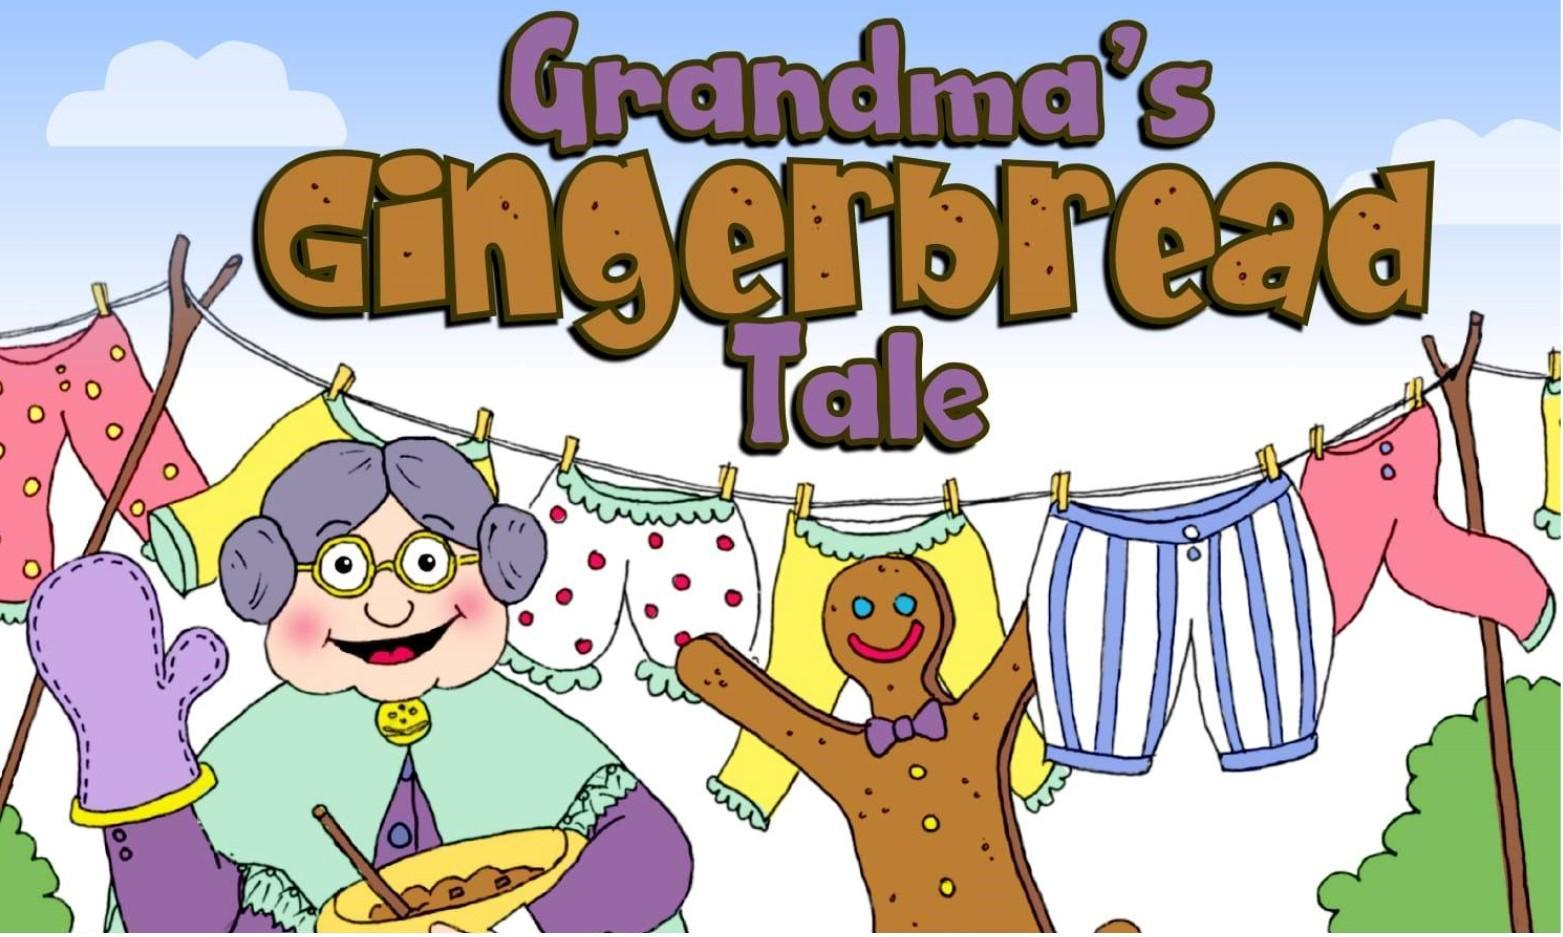 Grandma's Gingerbread Tales Show at Margam Park